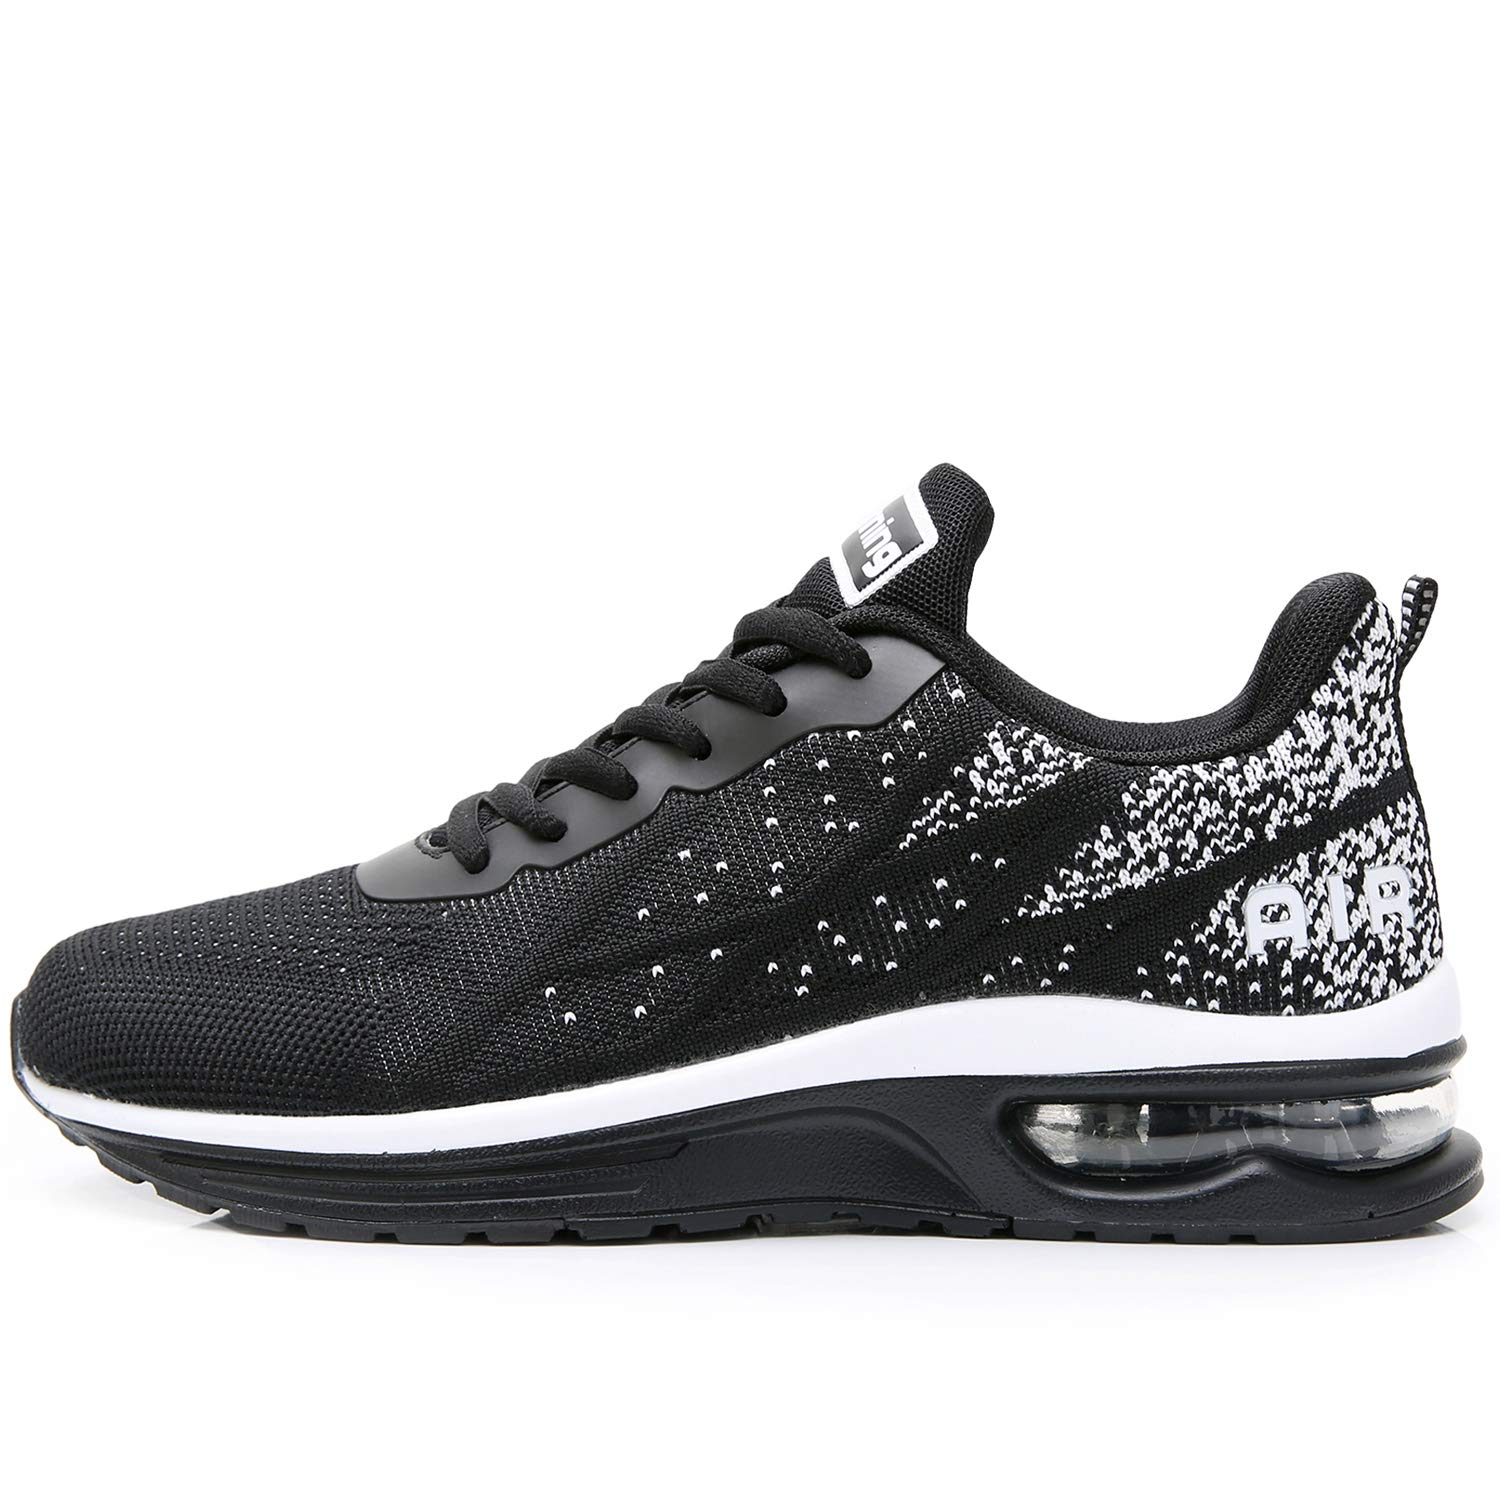 MAFEKE Women Air Athletic Running Shoes Fashion Tennis Breathable Lightweight Walking Sneakers